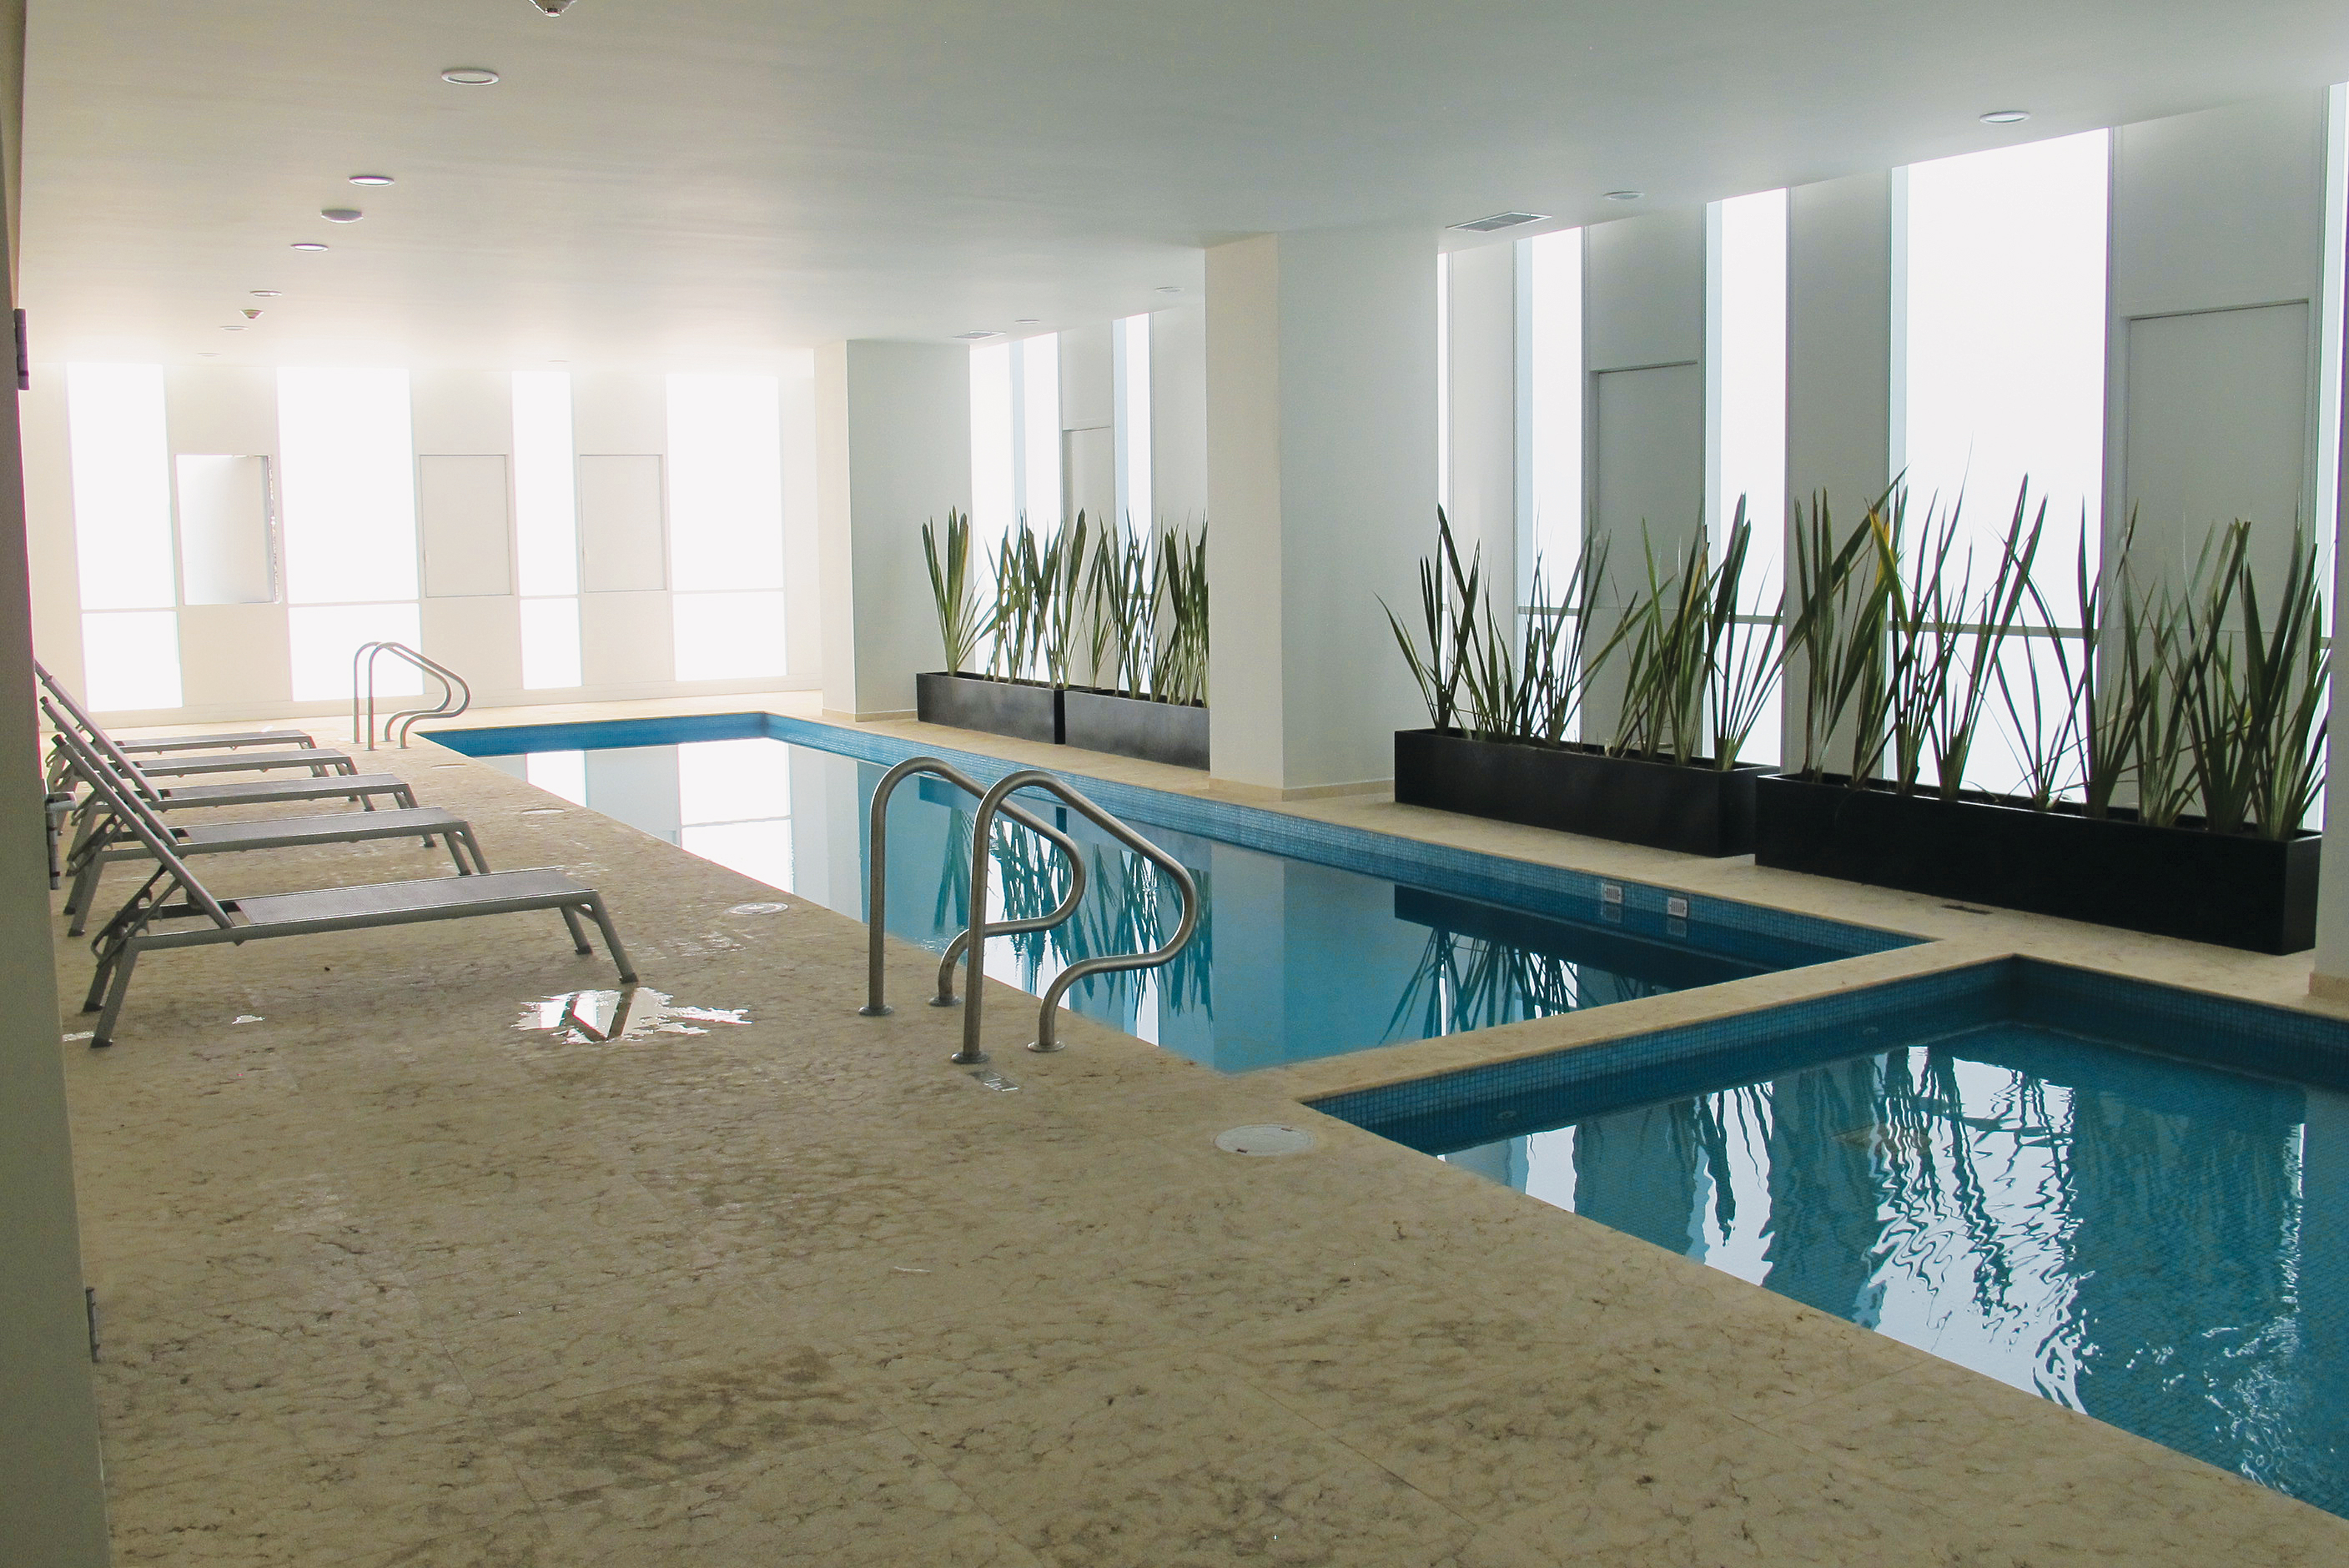 Image of the indoor pool at the Carso corporate housing building